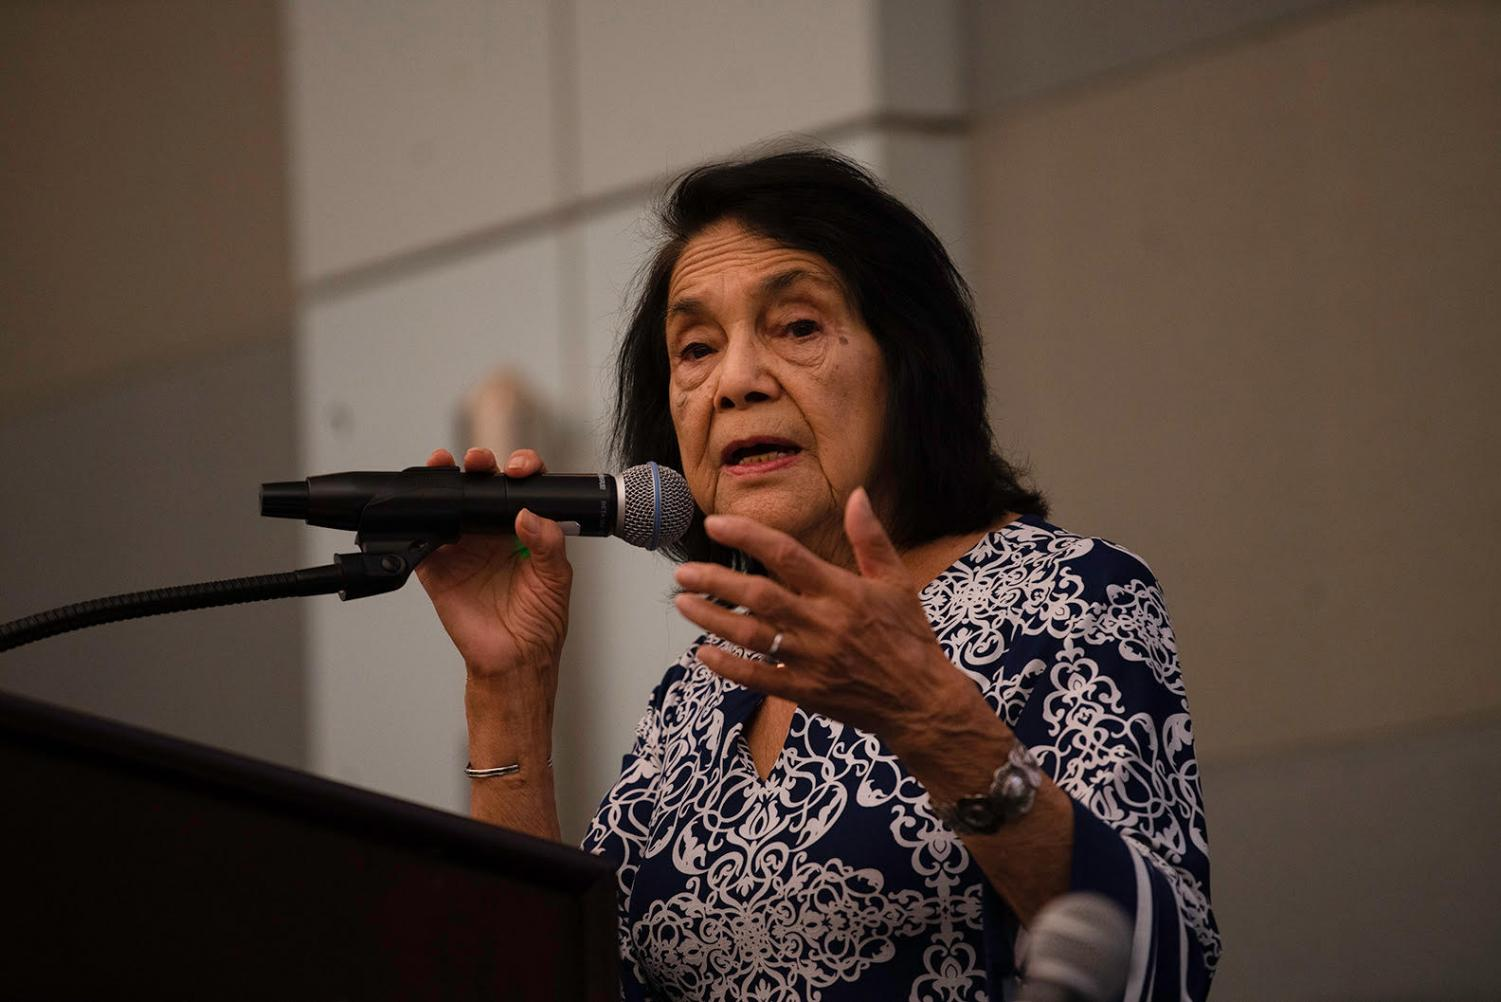 """Dolores Huerta, founder & president of the Dolores Huerta Foundation and Cofounder of the United Farm Workers of America with Cesar Chavez, spoke at the """"Empowering La Comunidad""""-Gentrification Town Hall."""